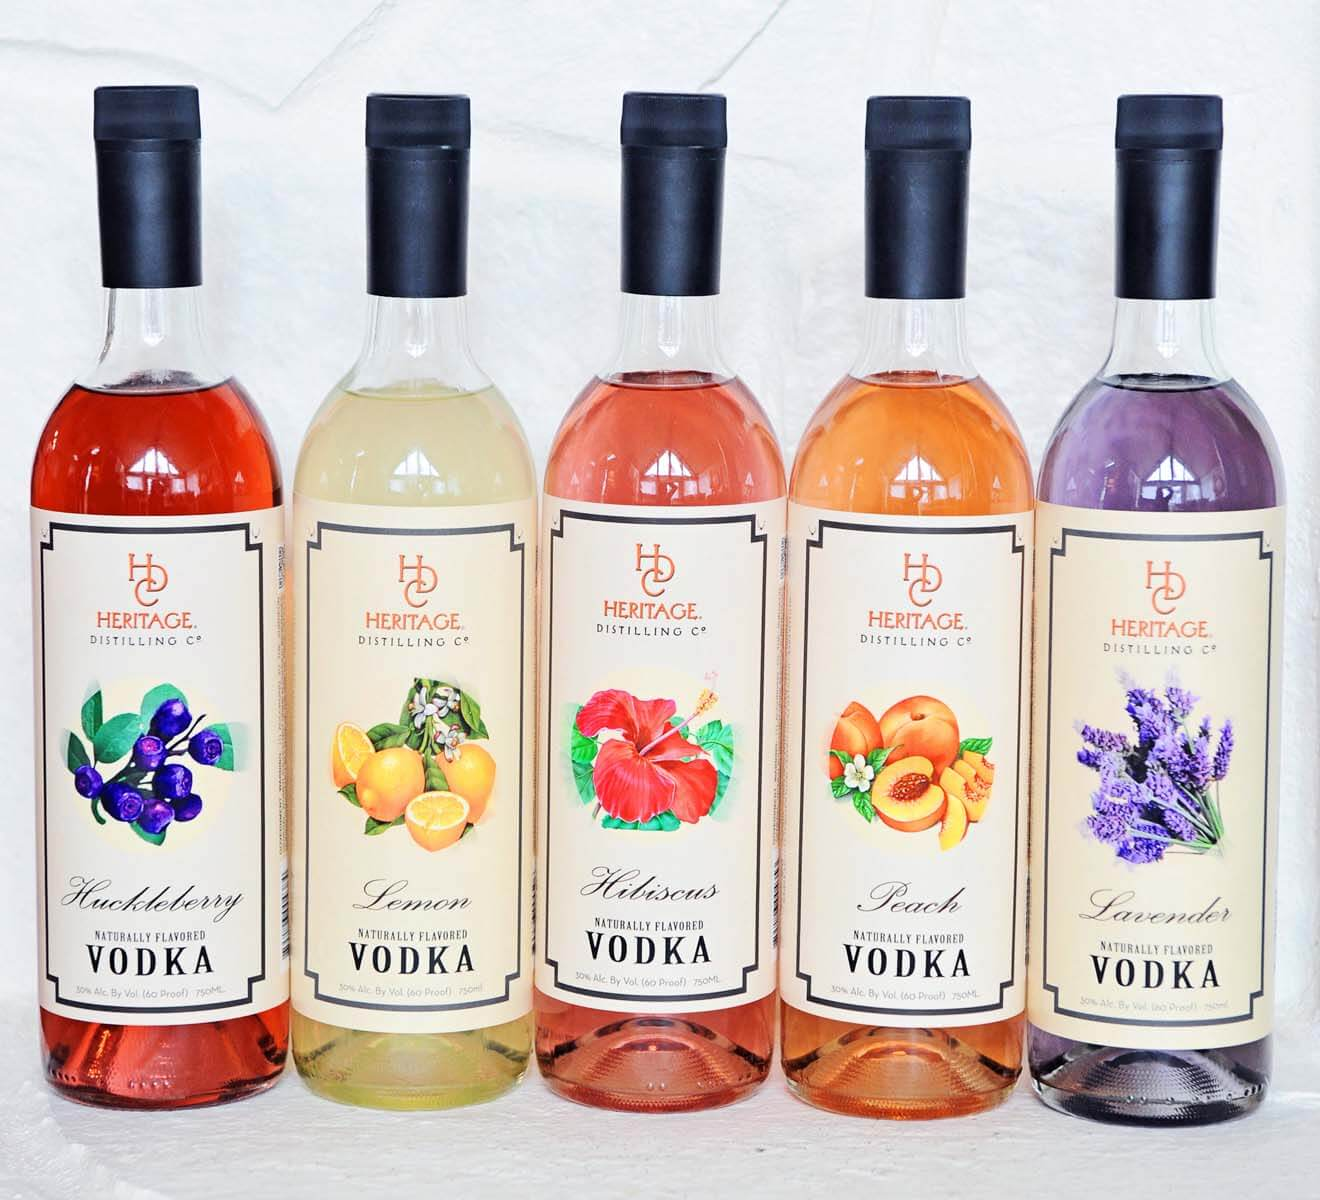 Heritage Distilling Flavored Vodka Varieties